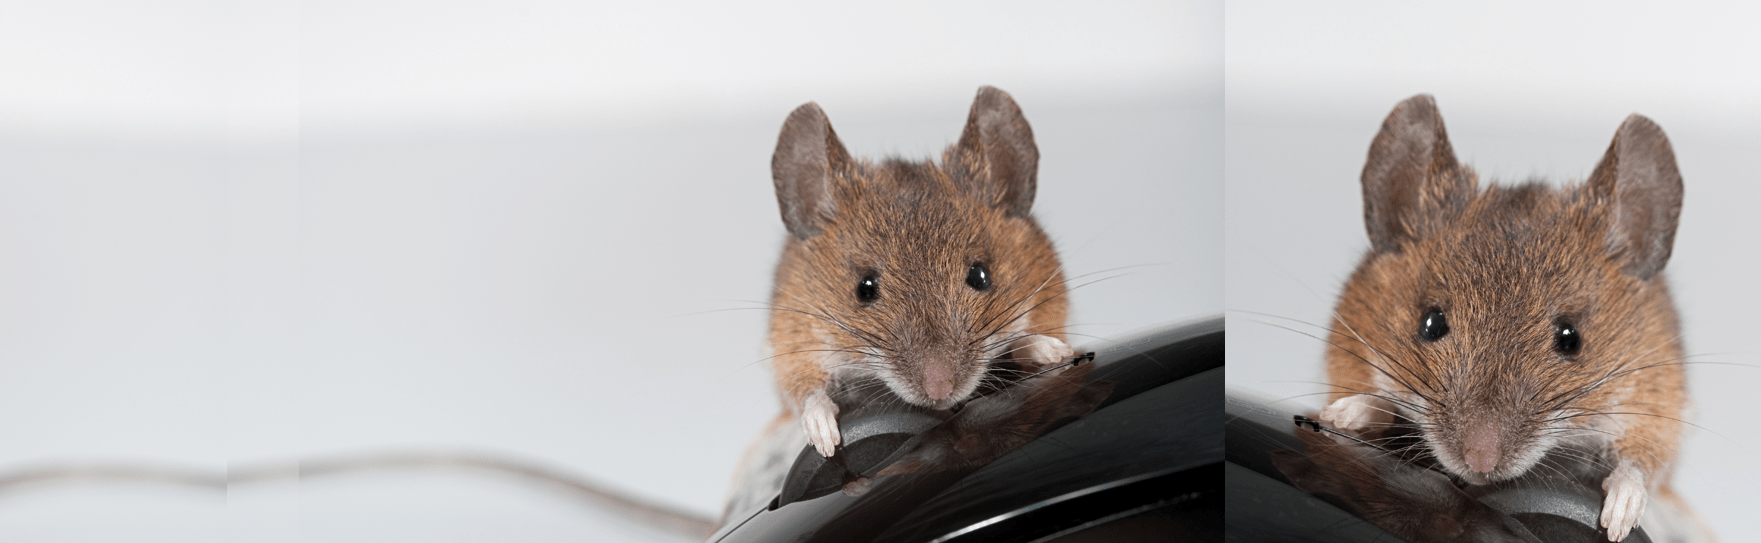 pest exterminators surrey second